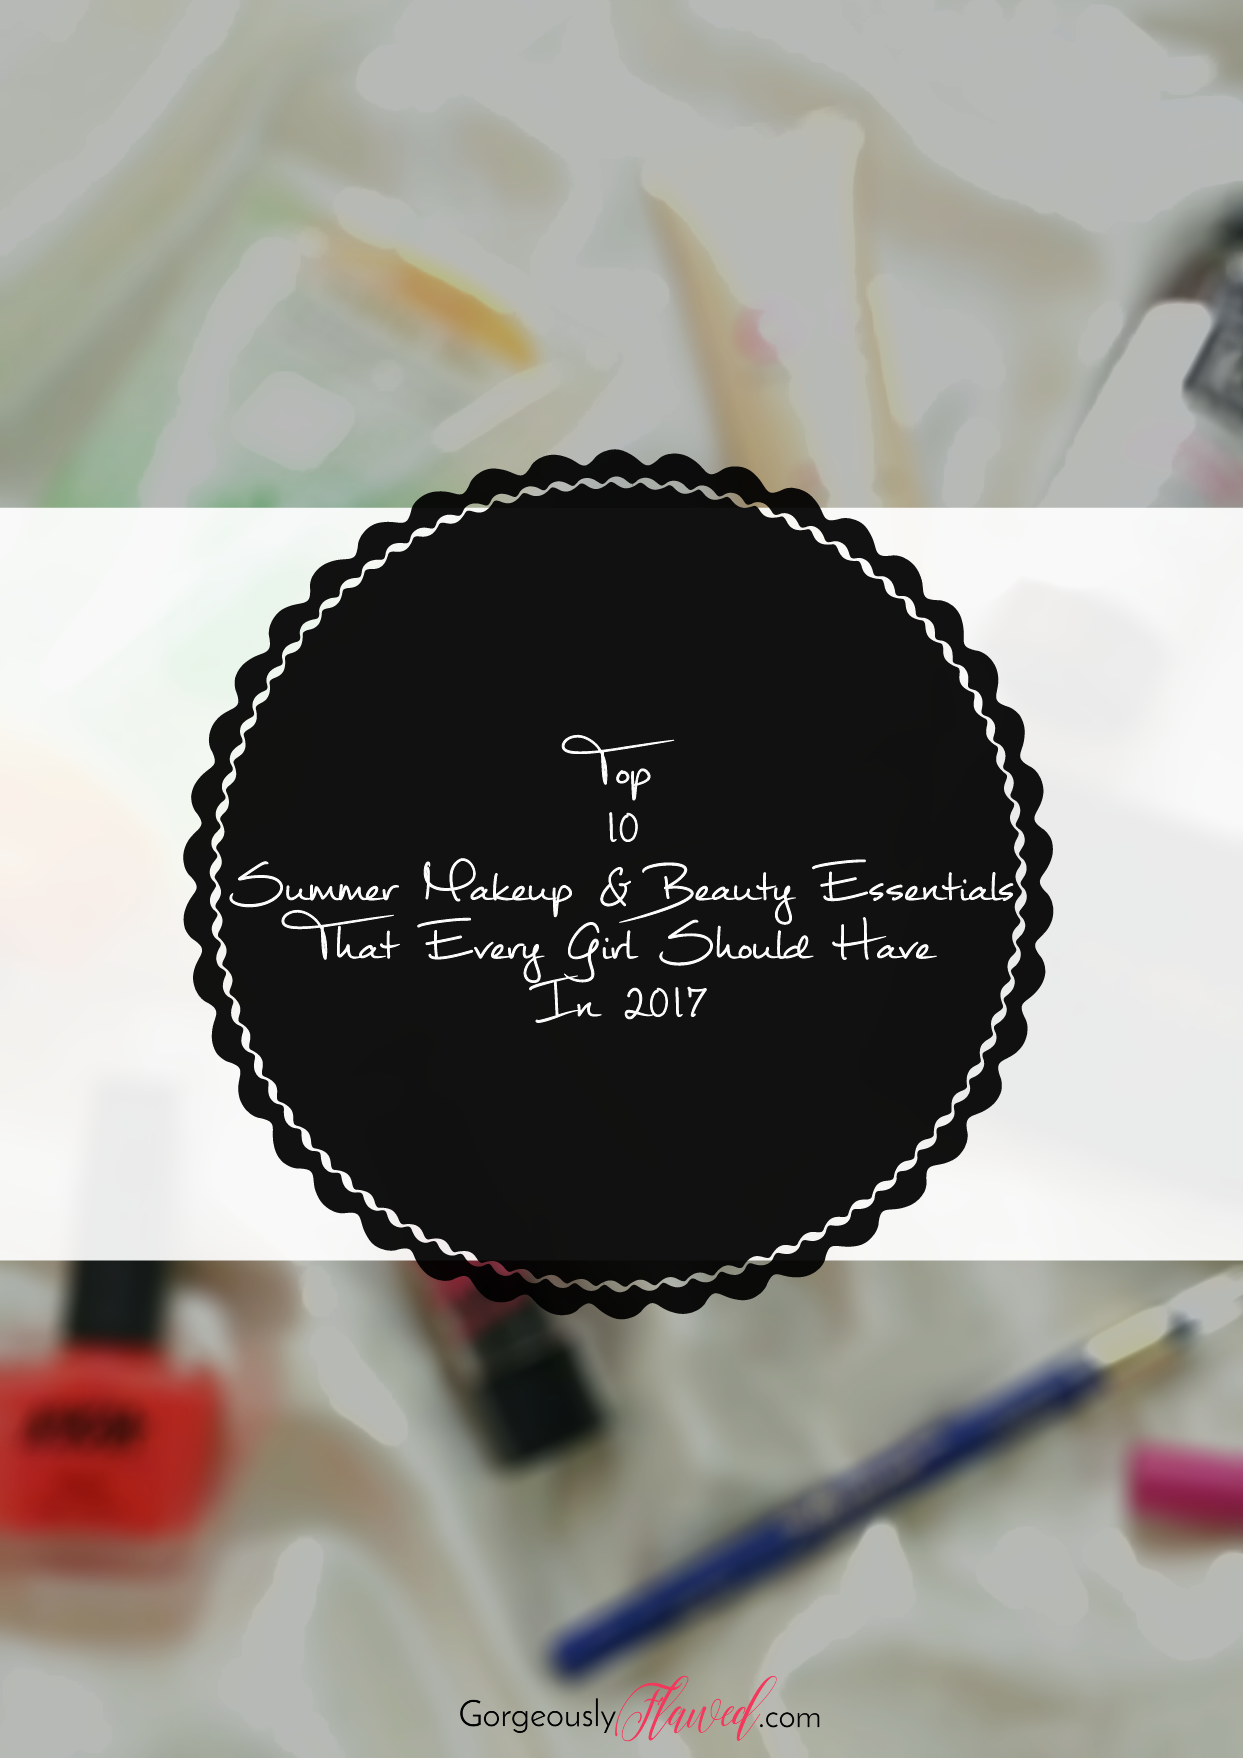 Top 10 Summer Makeup & Beauty Essentials That Every Girl Should Have In 2017